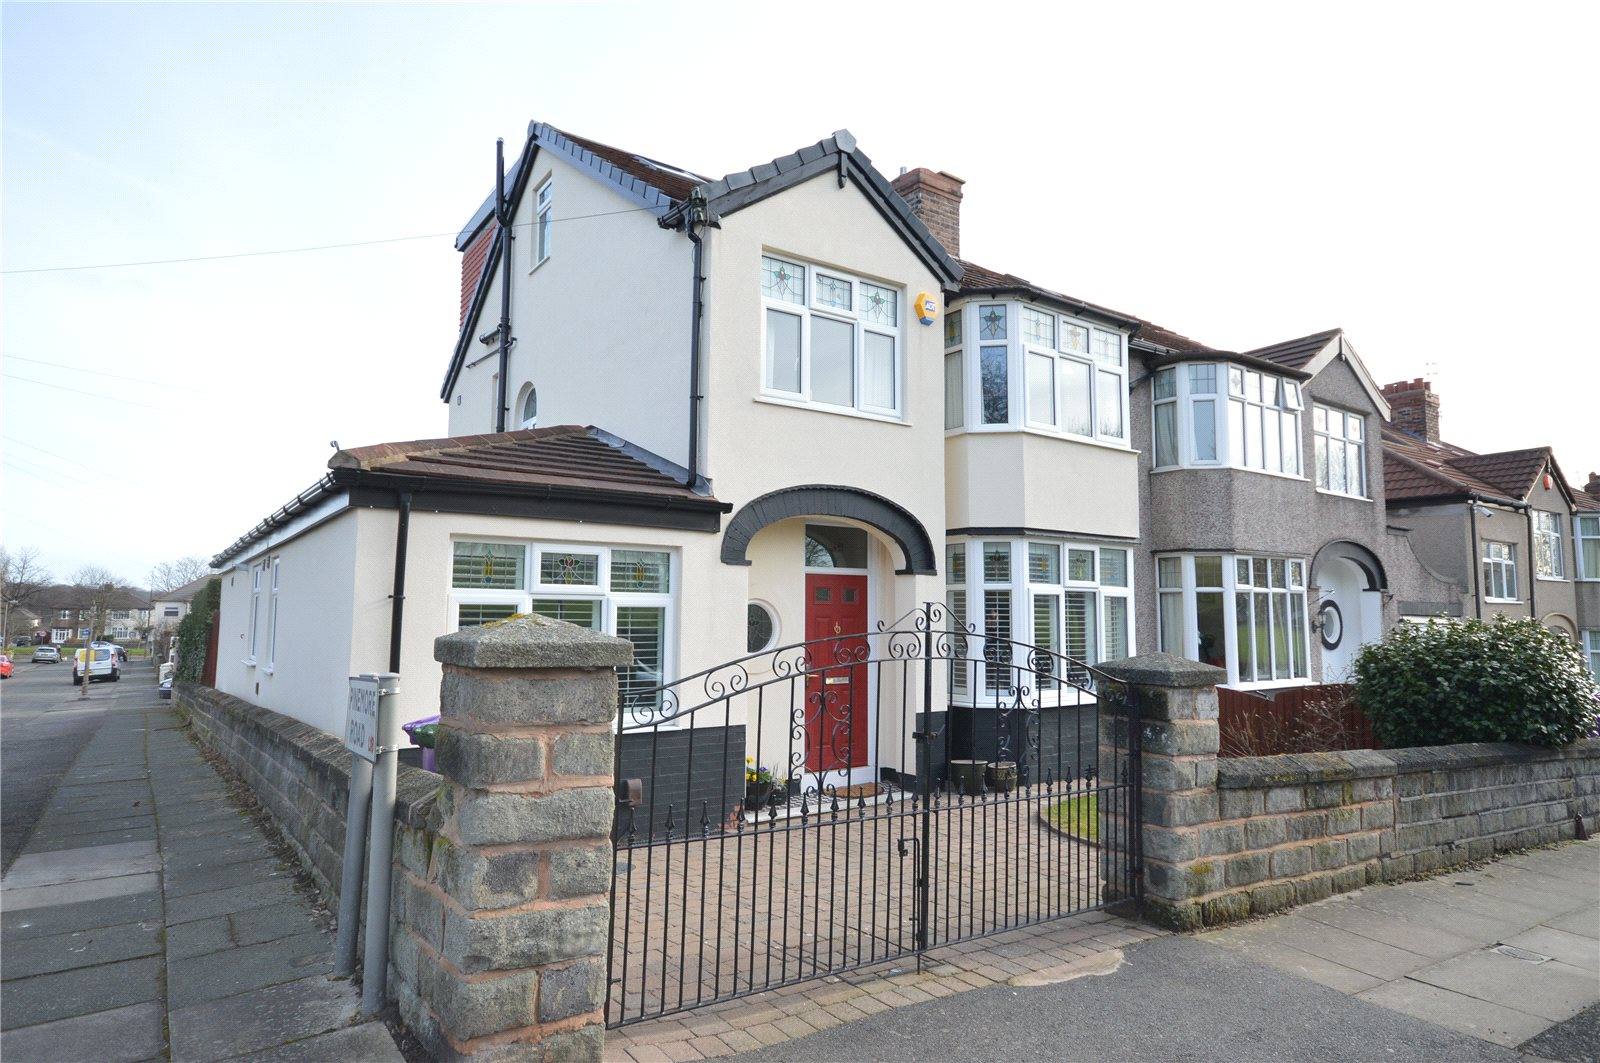 4 Bedrooms Semi Detached House for sale in Kylemore Avenue, Mossley Hill, Liverpool, L18